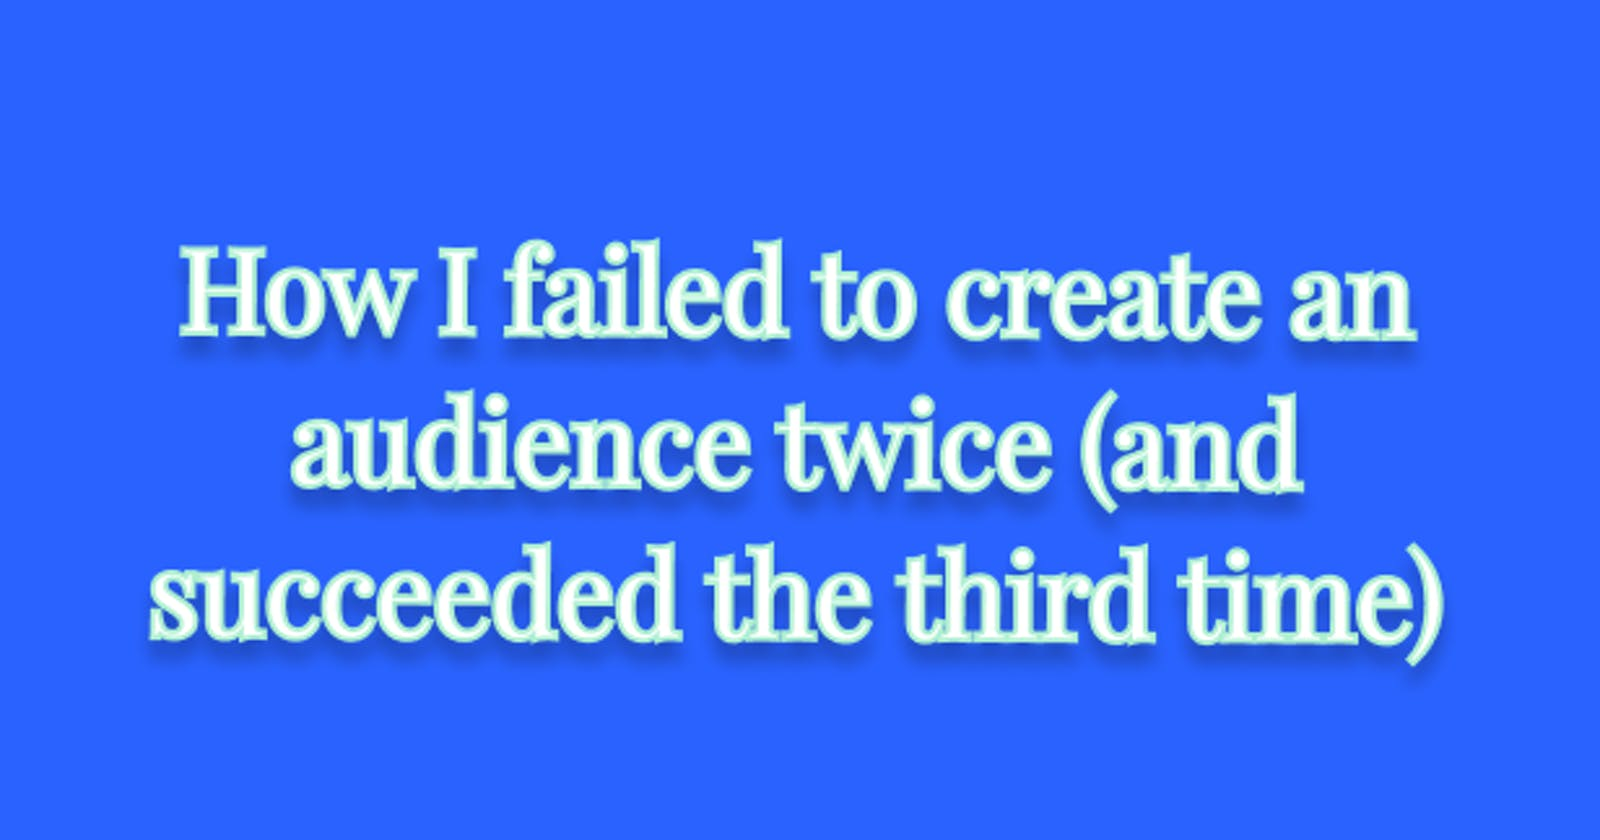 How I failed to create an audience twice (and succeeded the third time)